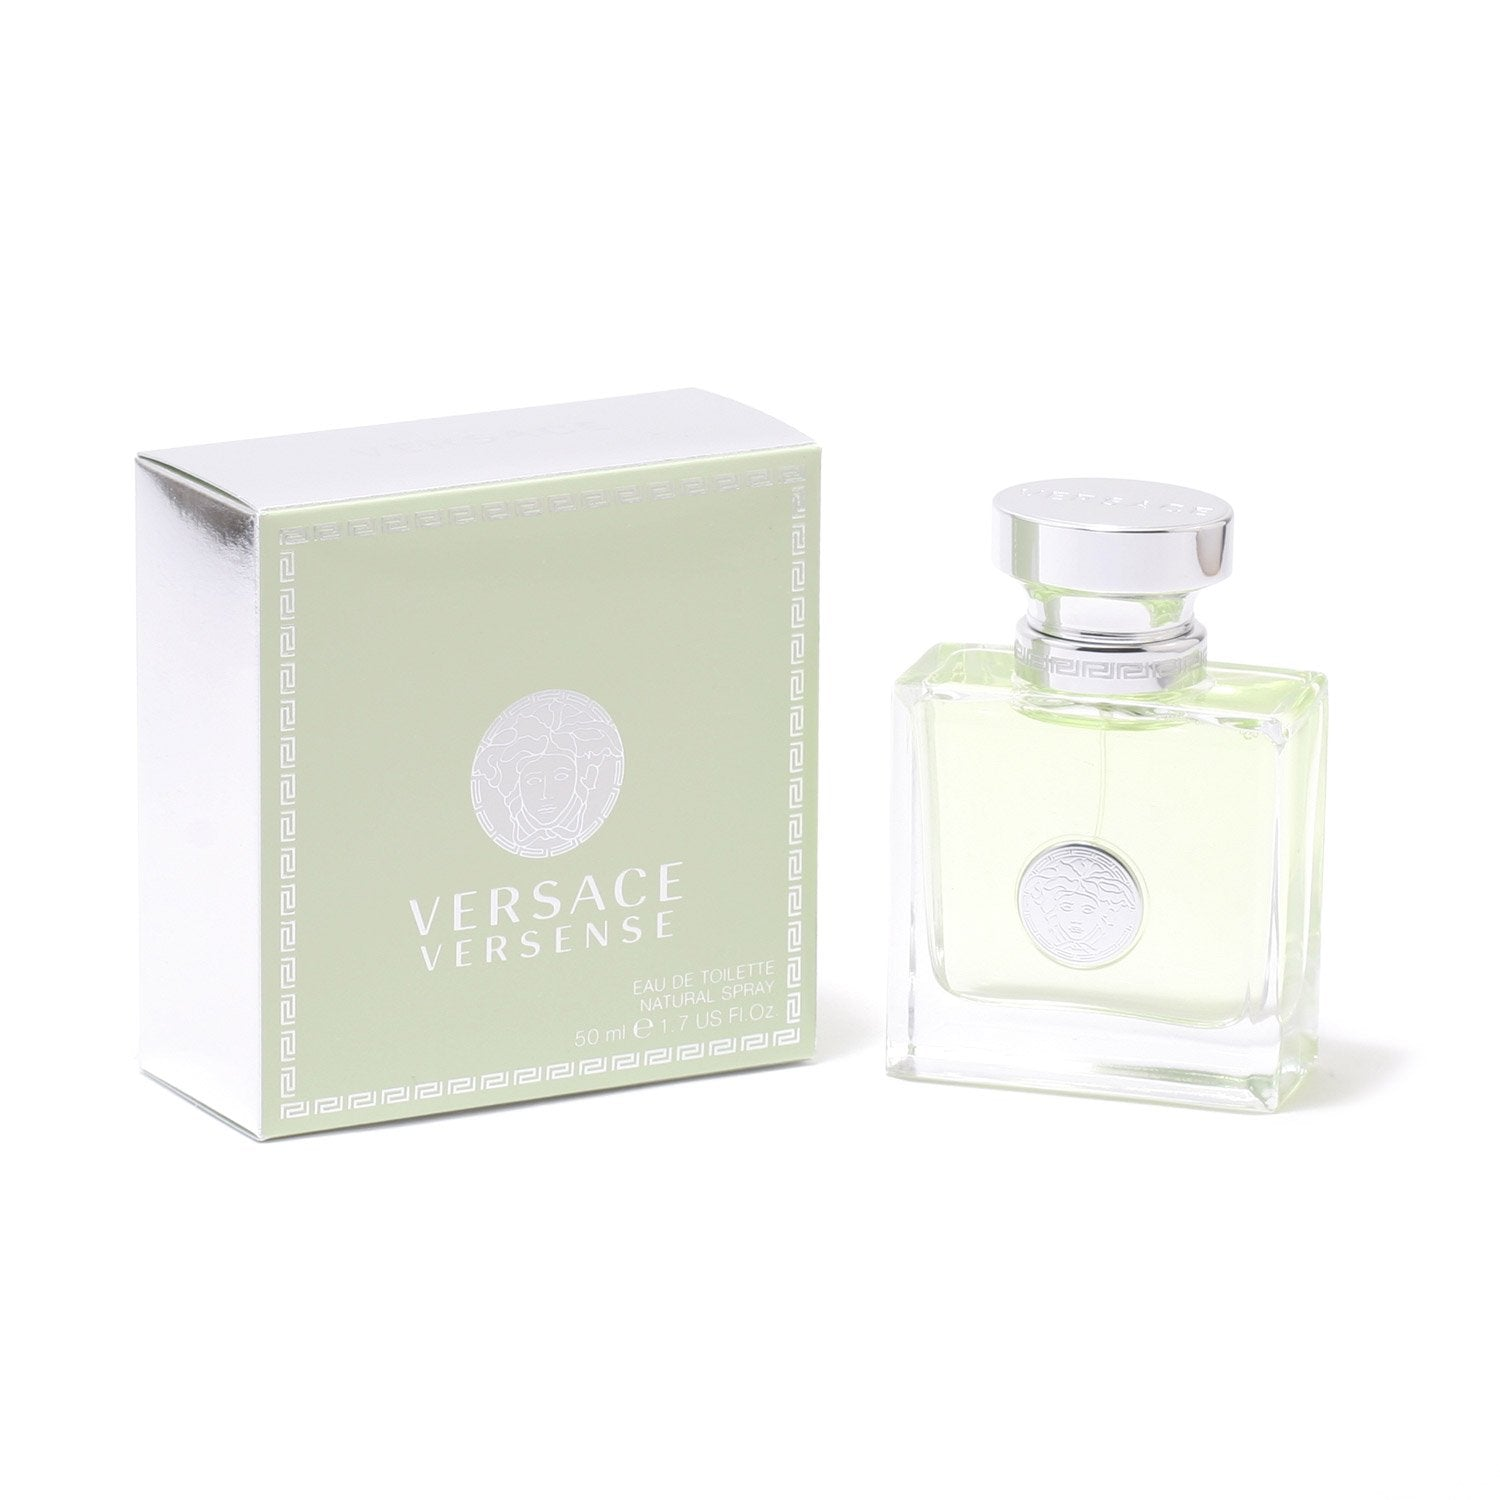 Perfume - VERSACE VERSENSE FOR WOMEN - EAU DE TOILETTE SPRAY